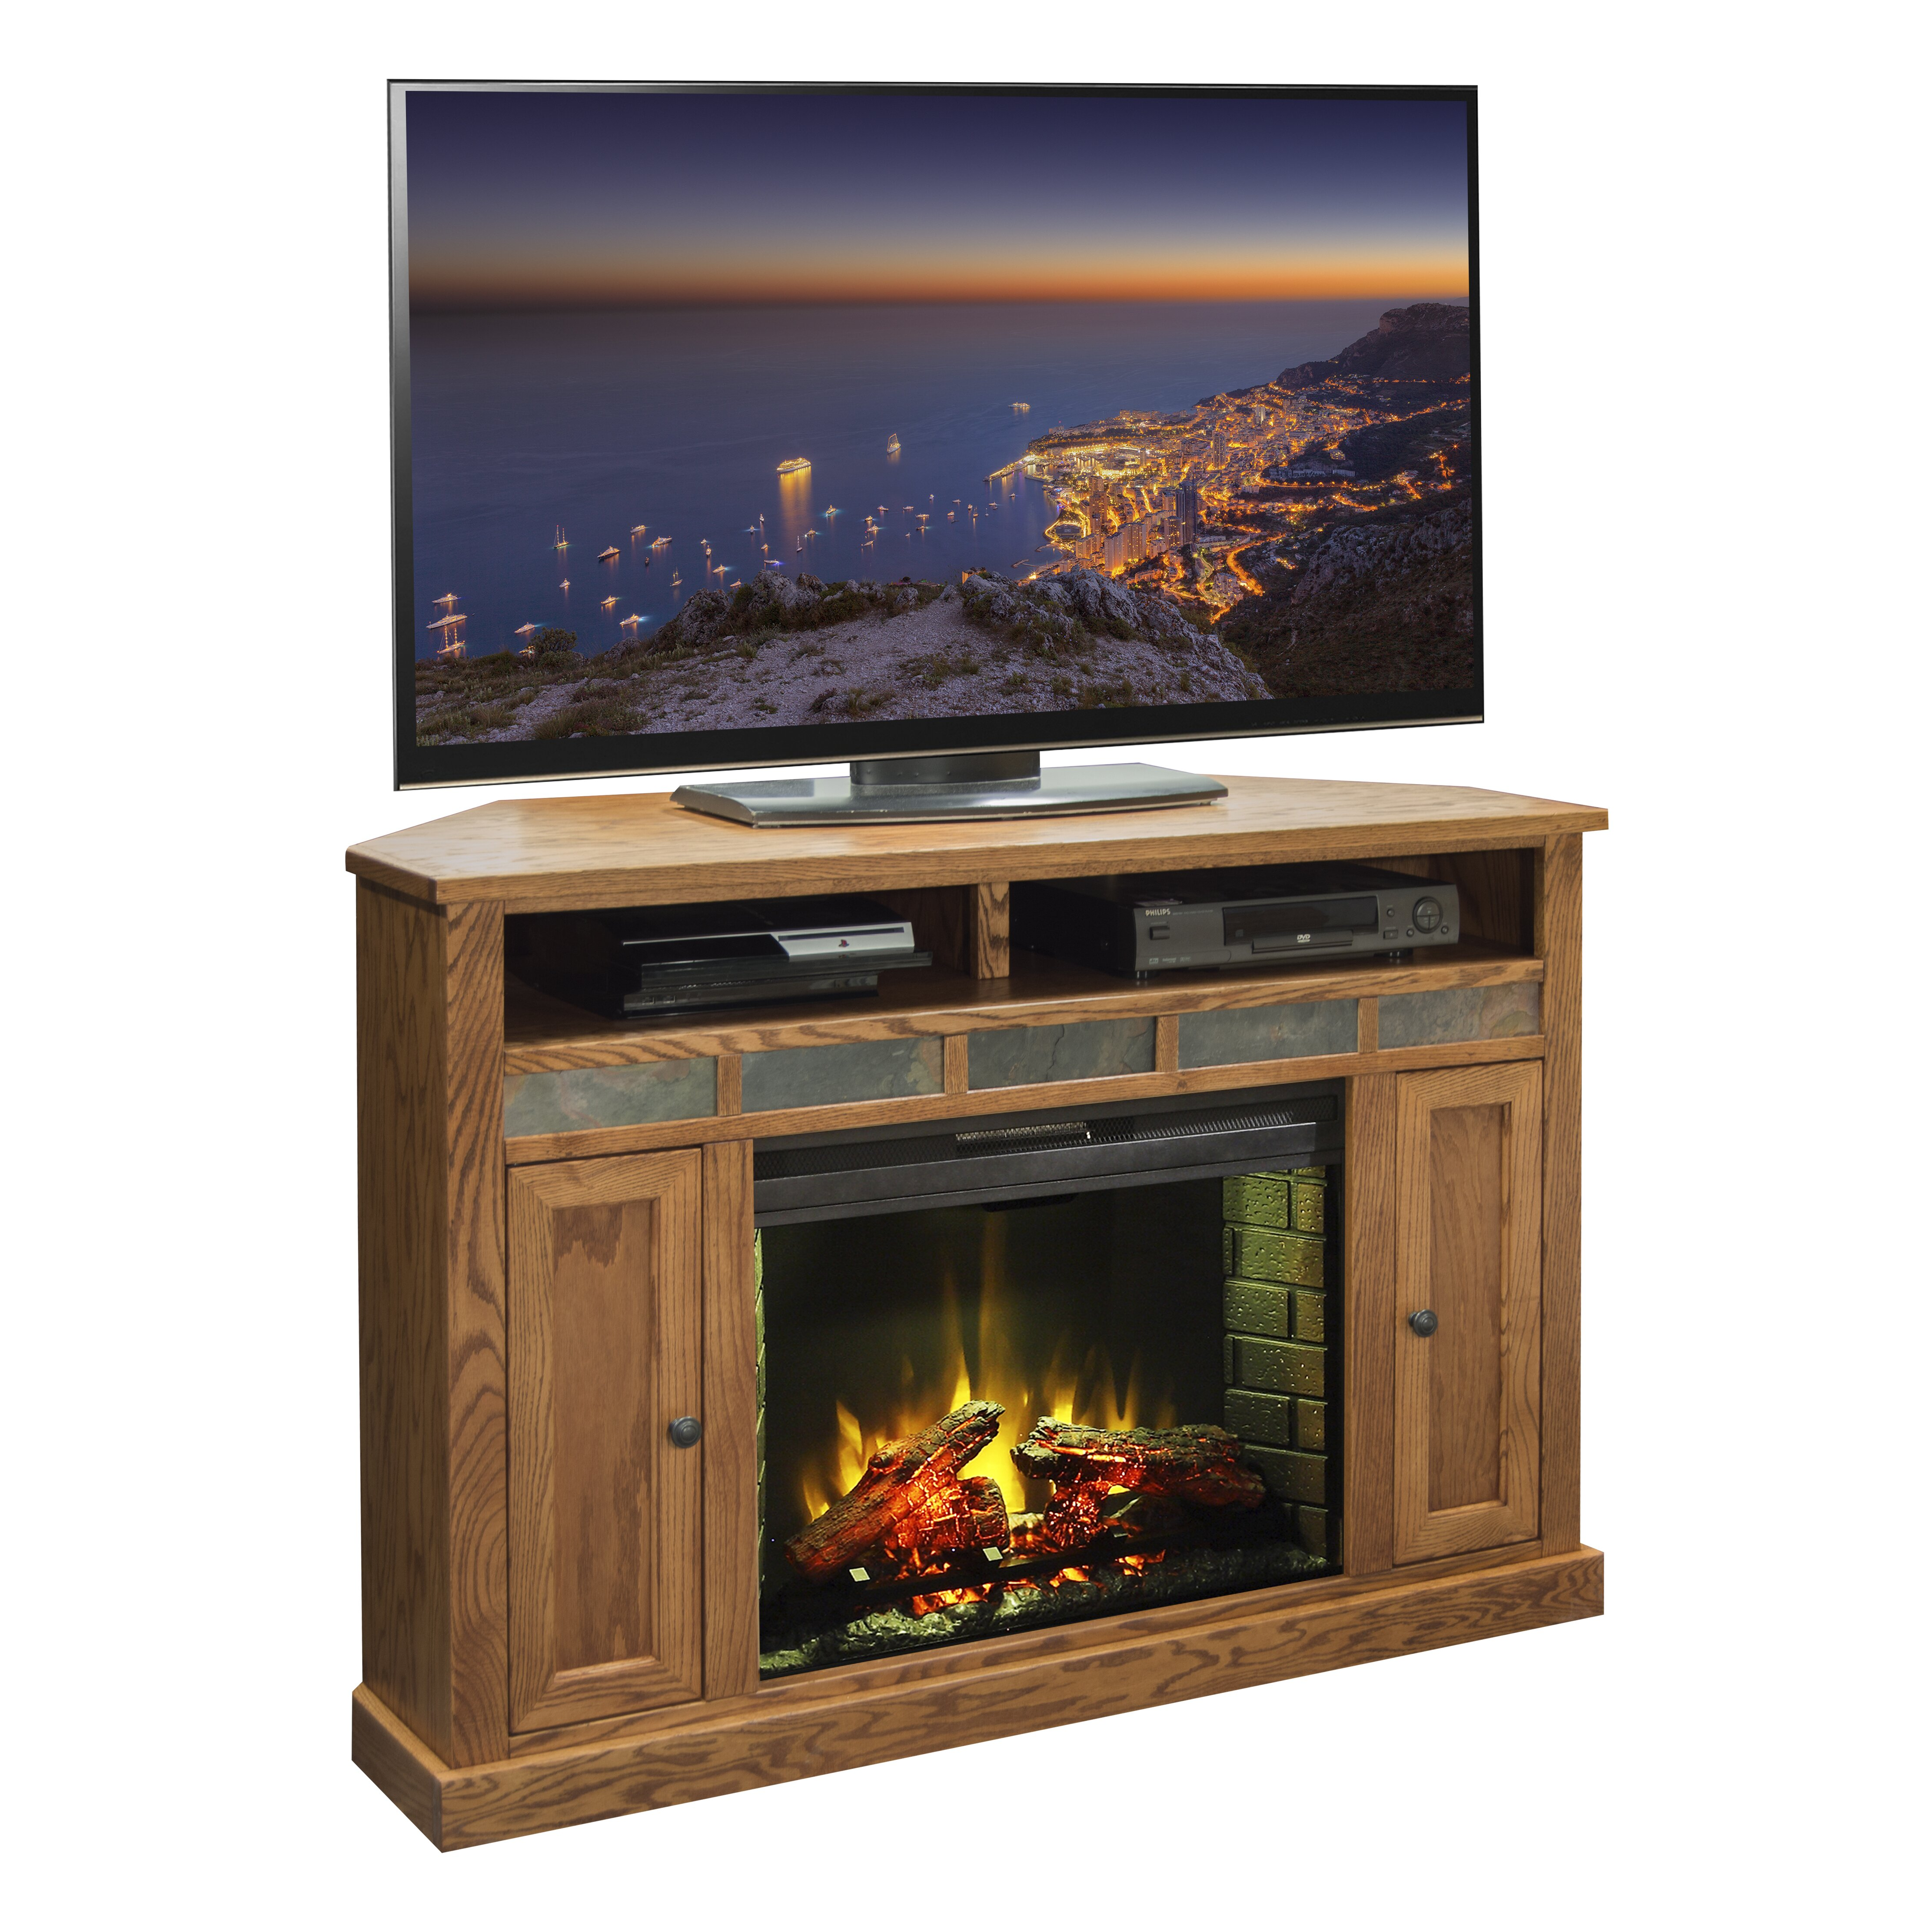 Legends Furniture Oak Creek Tv Stand With Electric Fireplace Reviews Wayfair